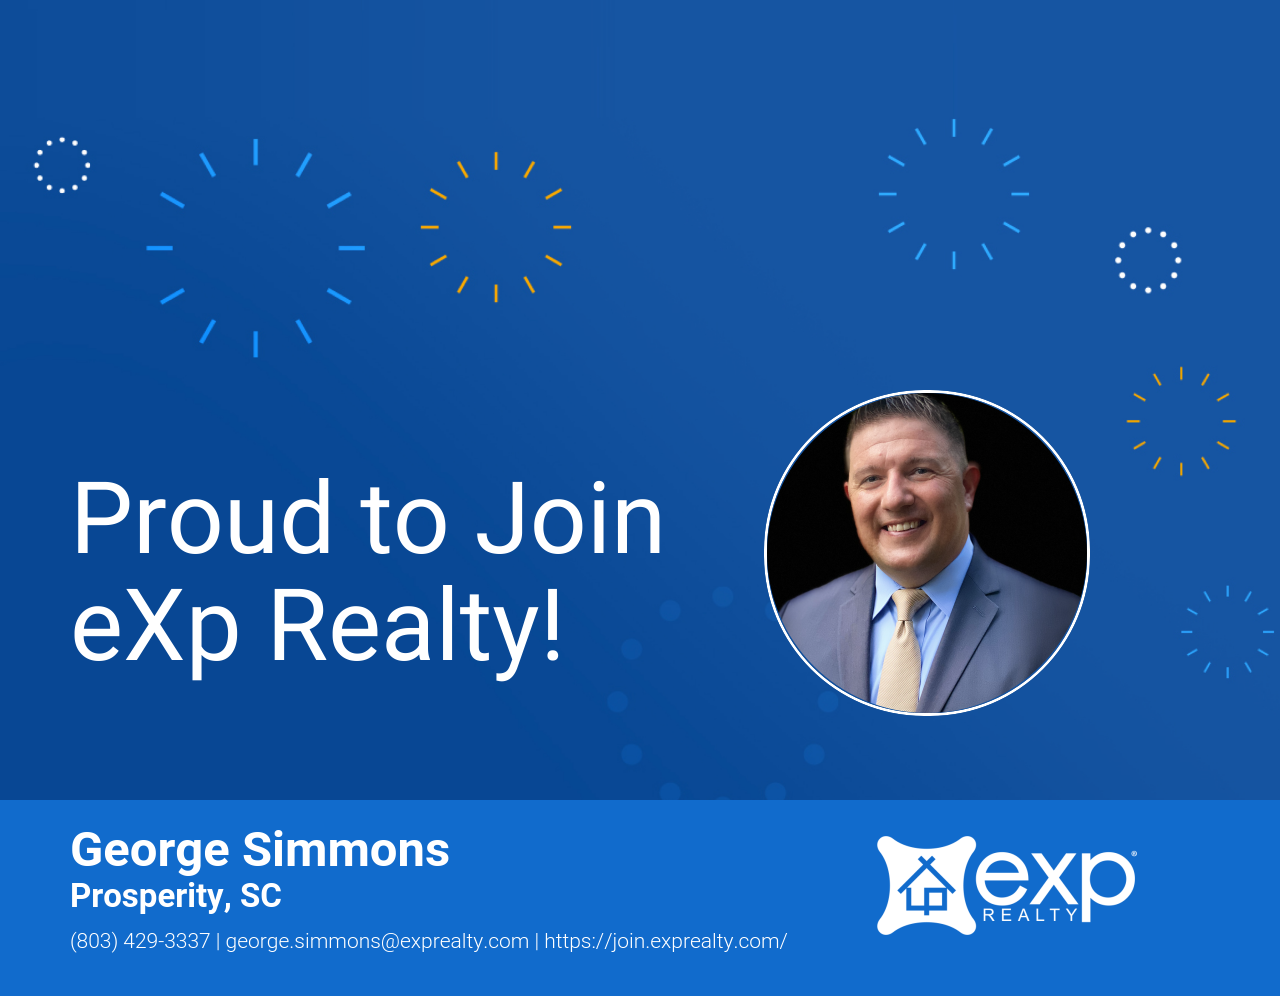 George Simmons Joined eXp Realty!